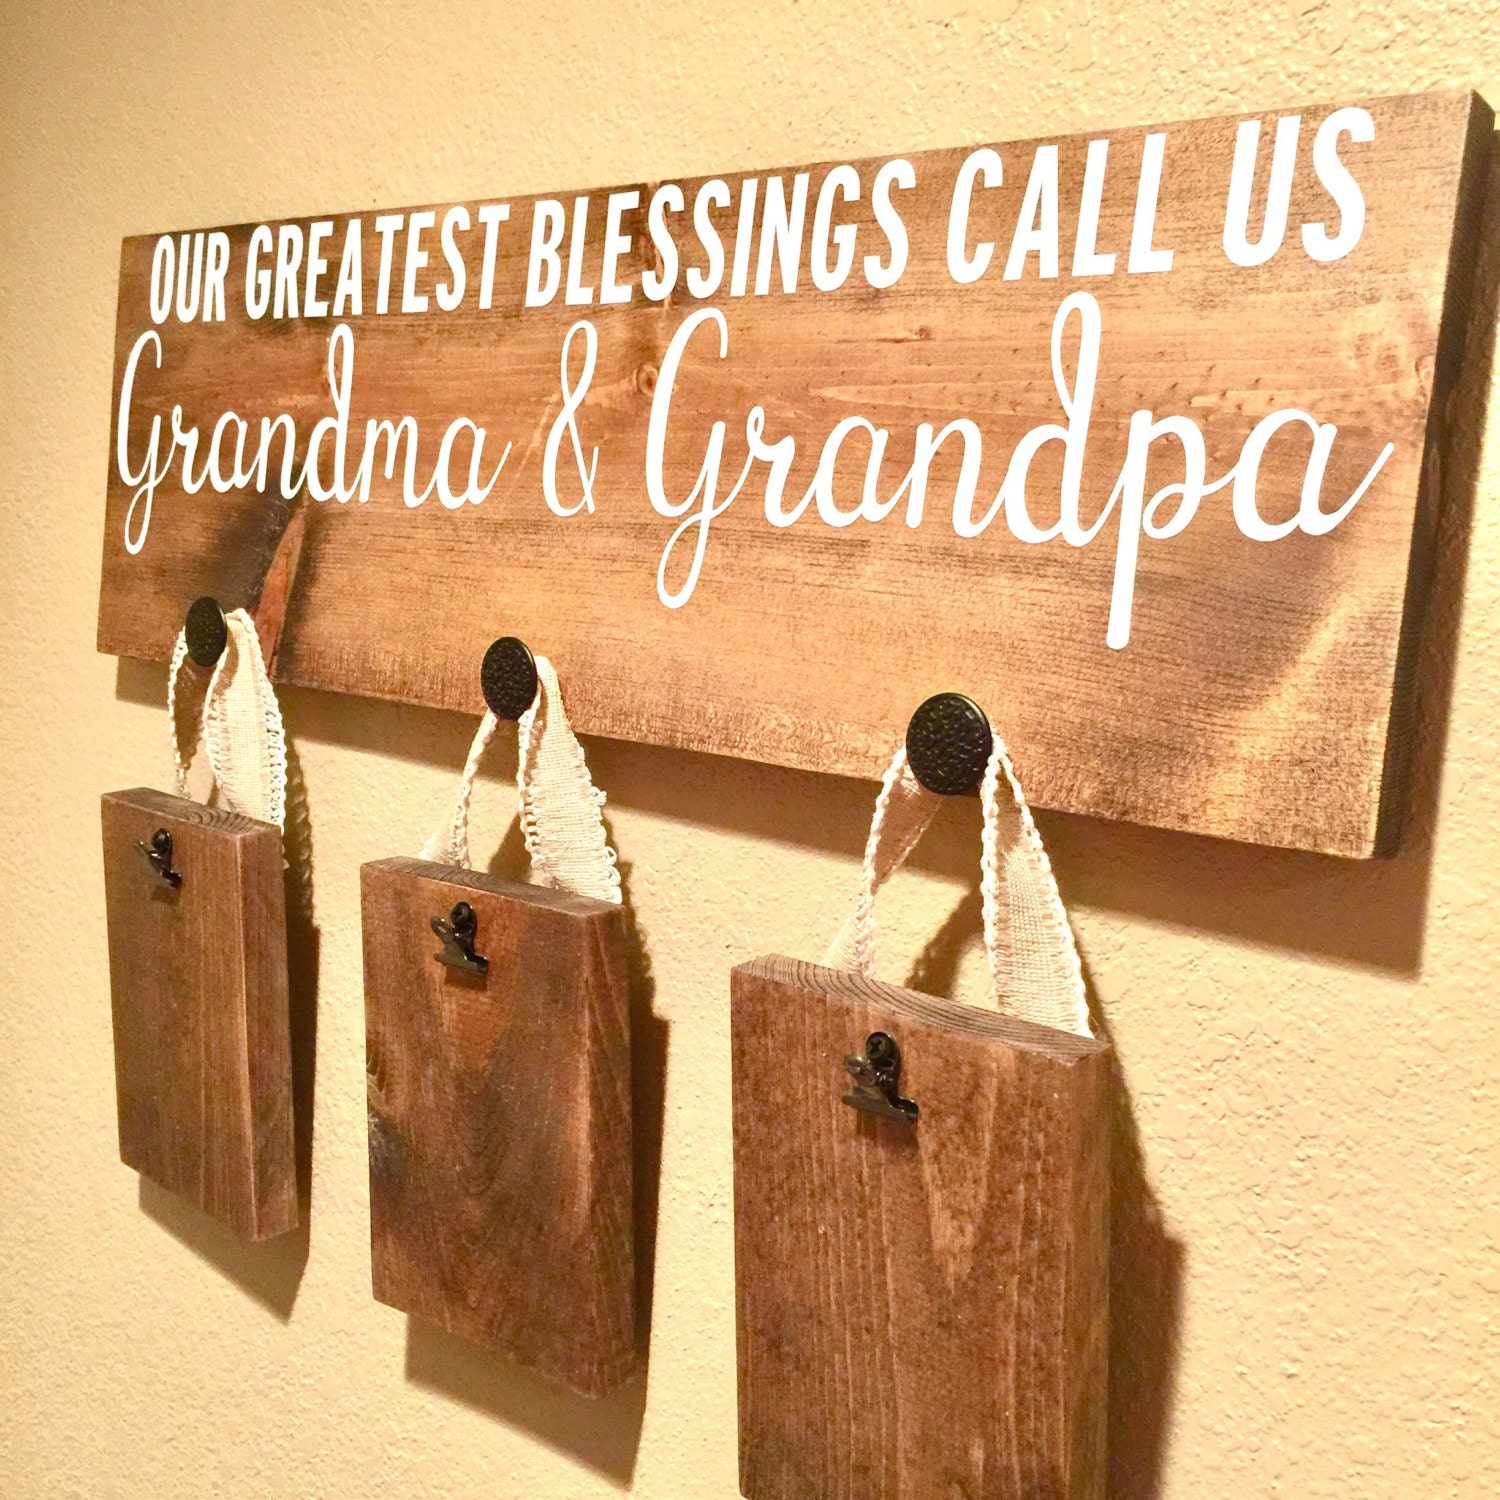 Our Greatest Blessings Call Us Grandma & Grandpa Wall Sign